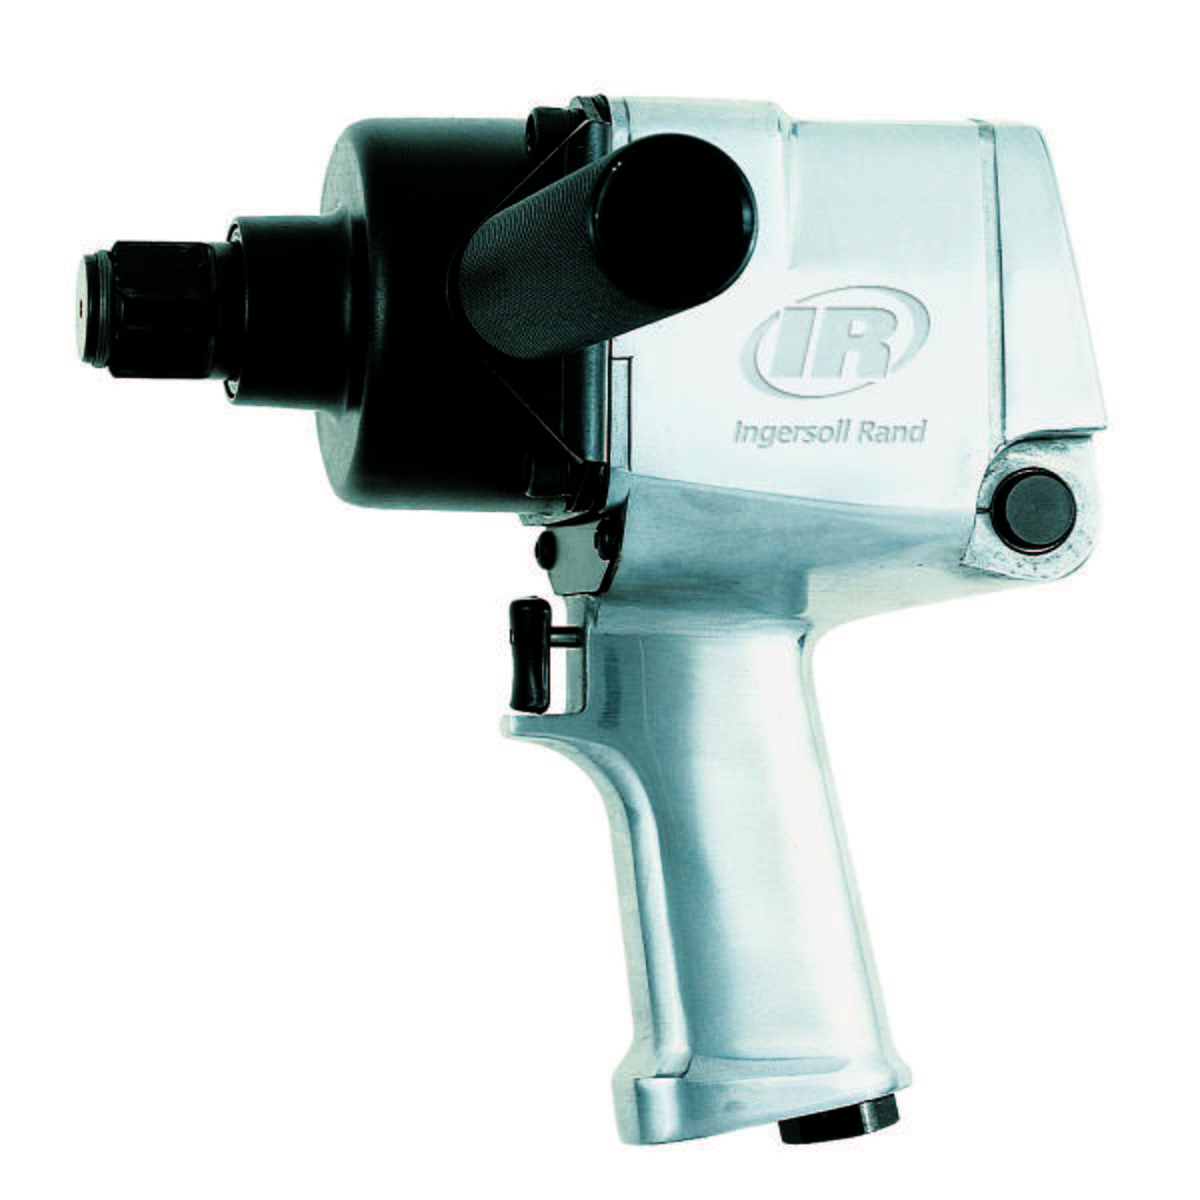 1-In Drive Super Duty Air Impact Wrench - 1,100 Ft-Lbs Max Torque